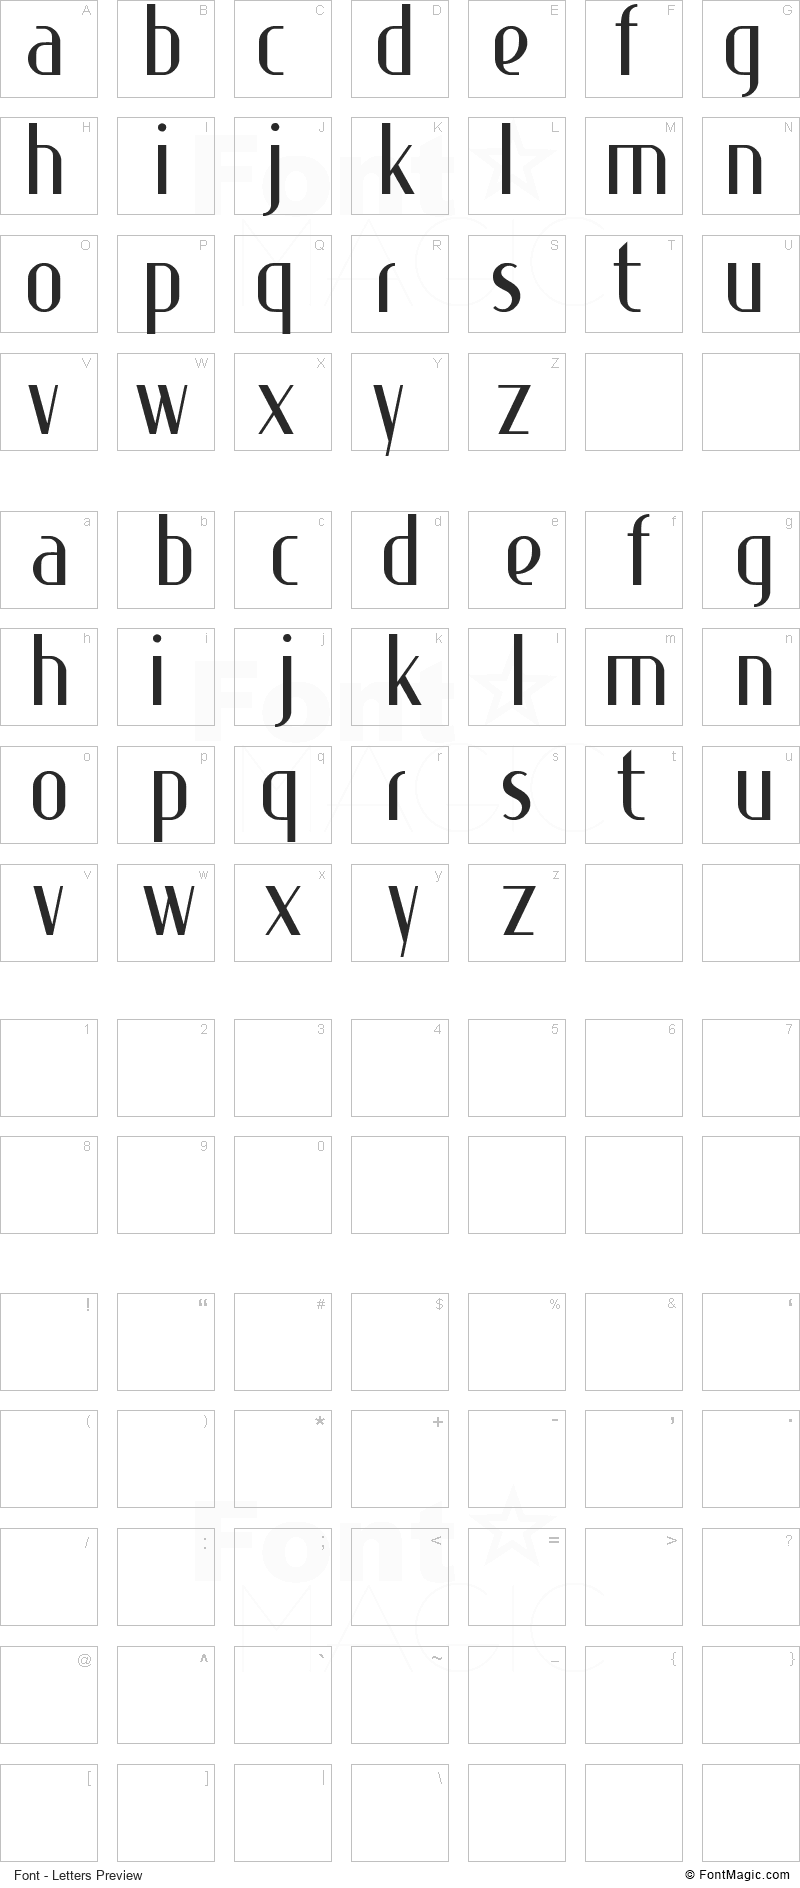 Special K Font - All Latters Preview Chart